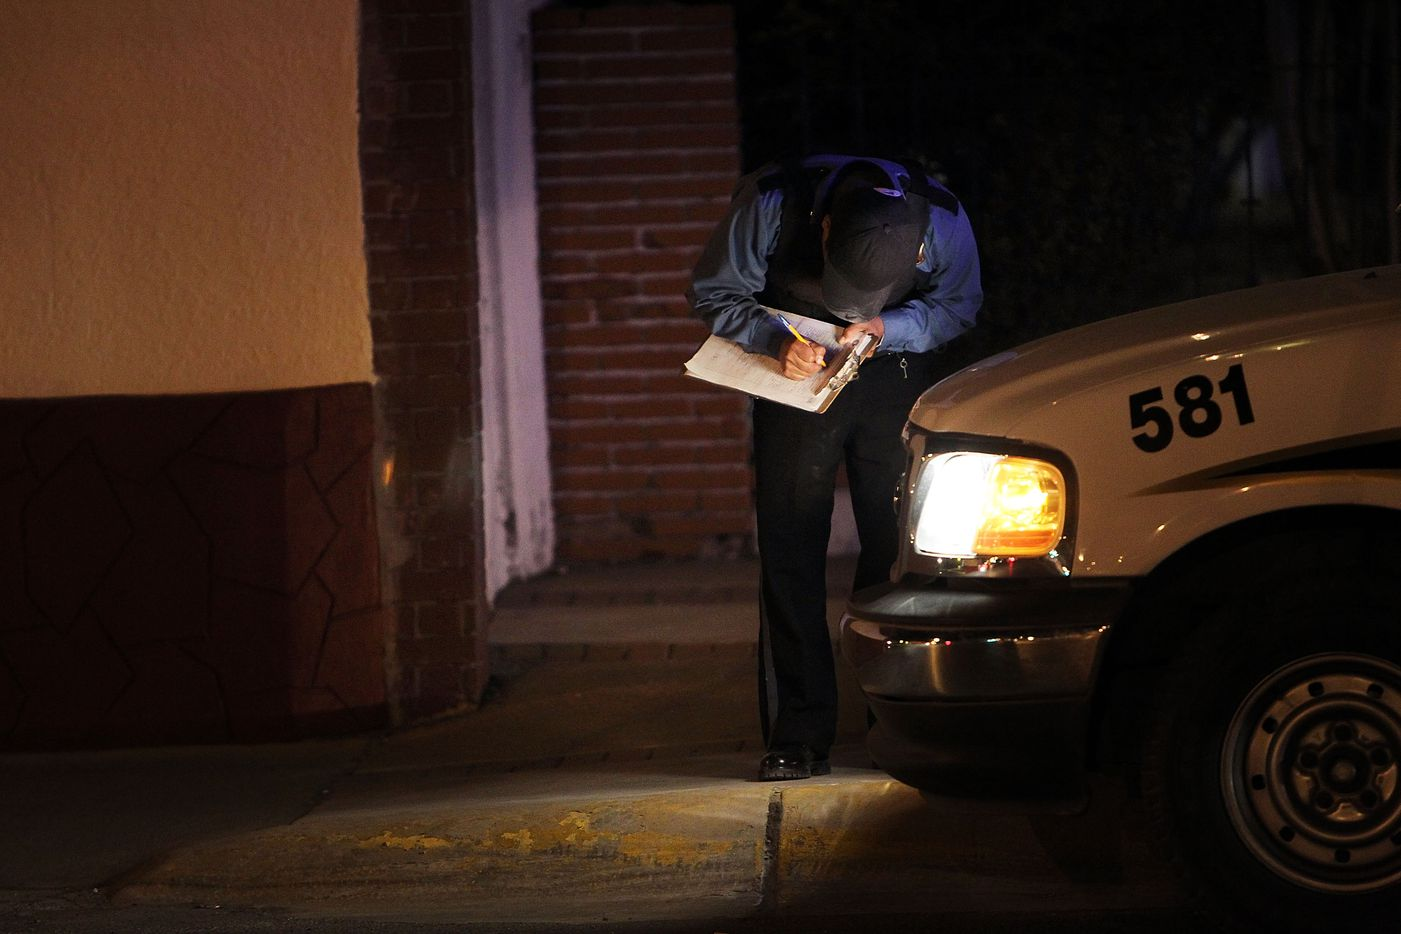 A police officer takes notes at an early morning murder on March 26, 2010 in Juarez, Mexico.